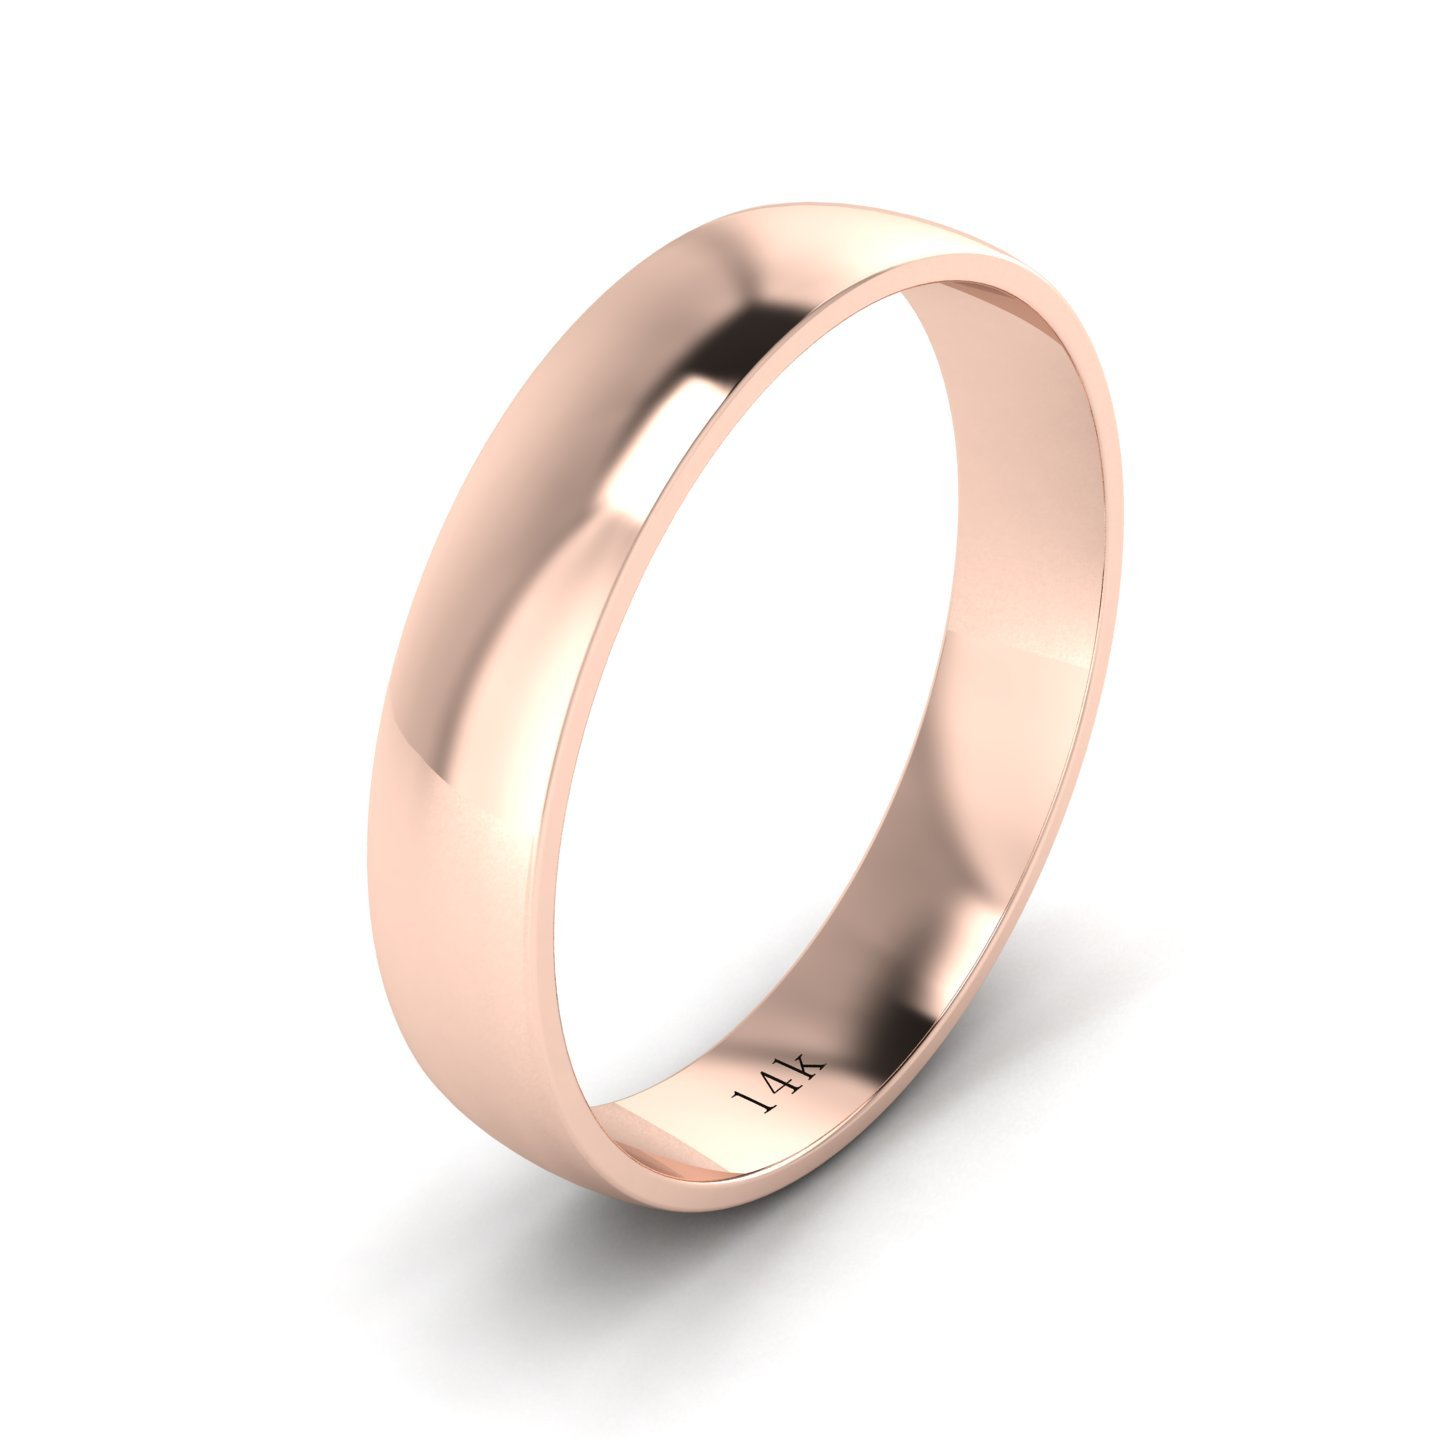 Unisex 14k Rose Gold 4mm Light Court Shape Comfort Fit Polished Wedding Ring Plain Band (6)